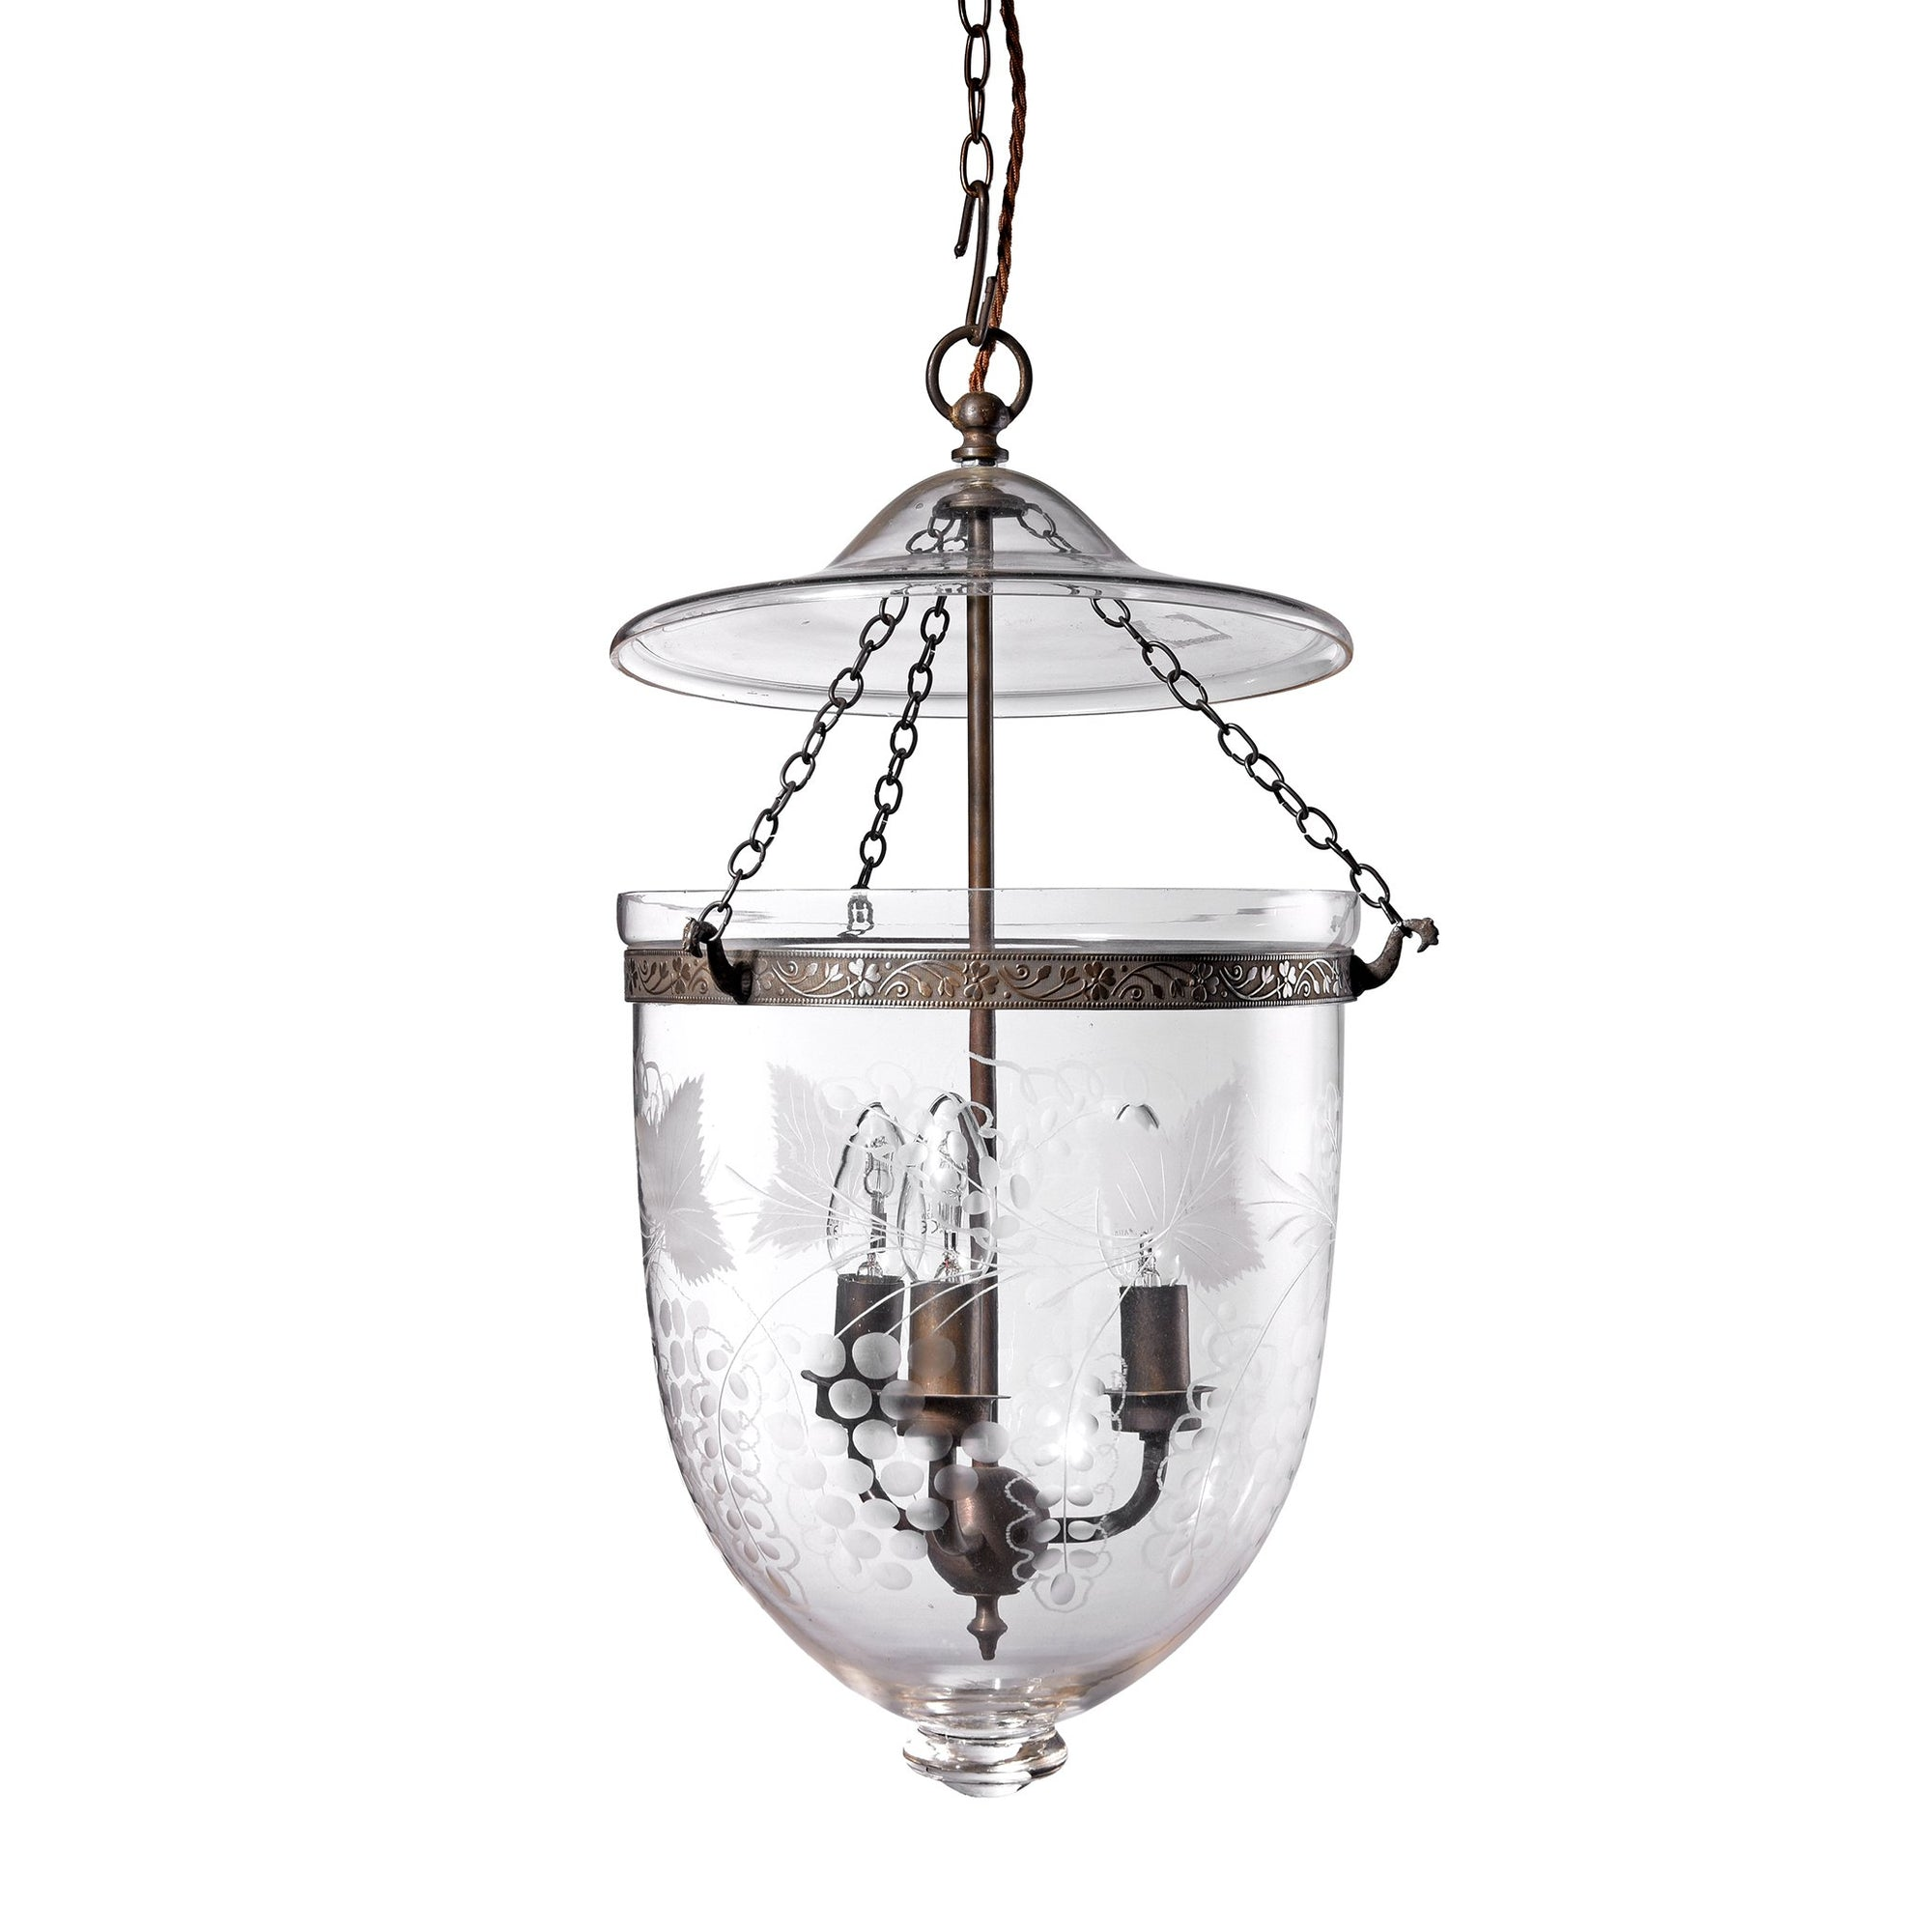 Engraved Glass Hundi Lamp With 3 Way Fitting - Grapes